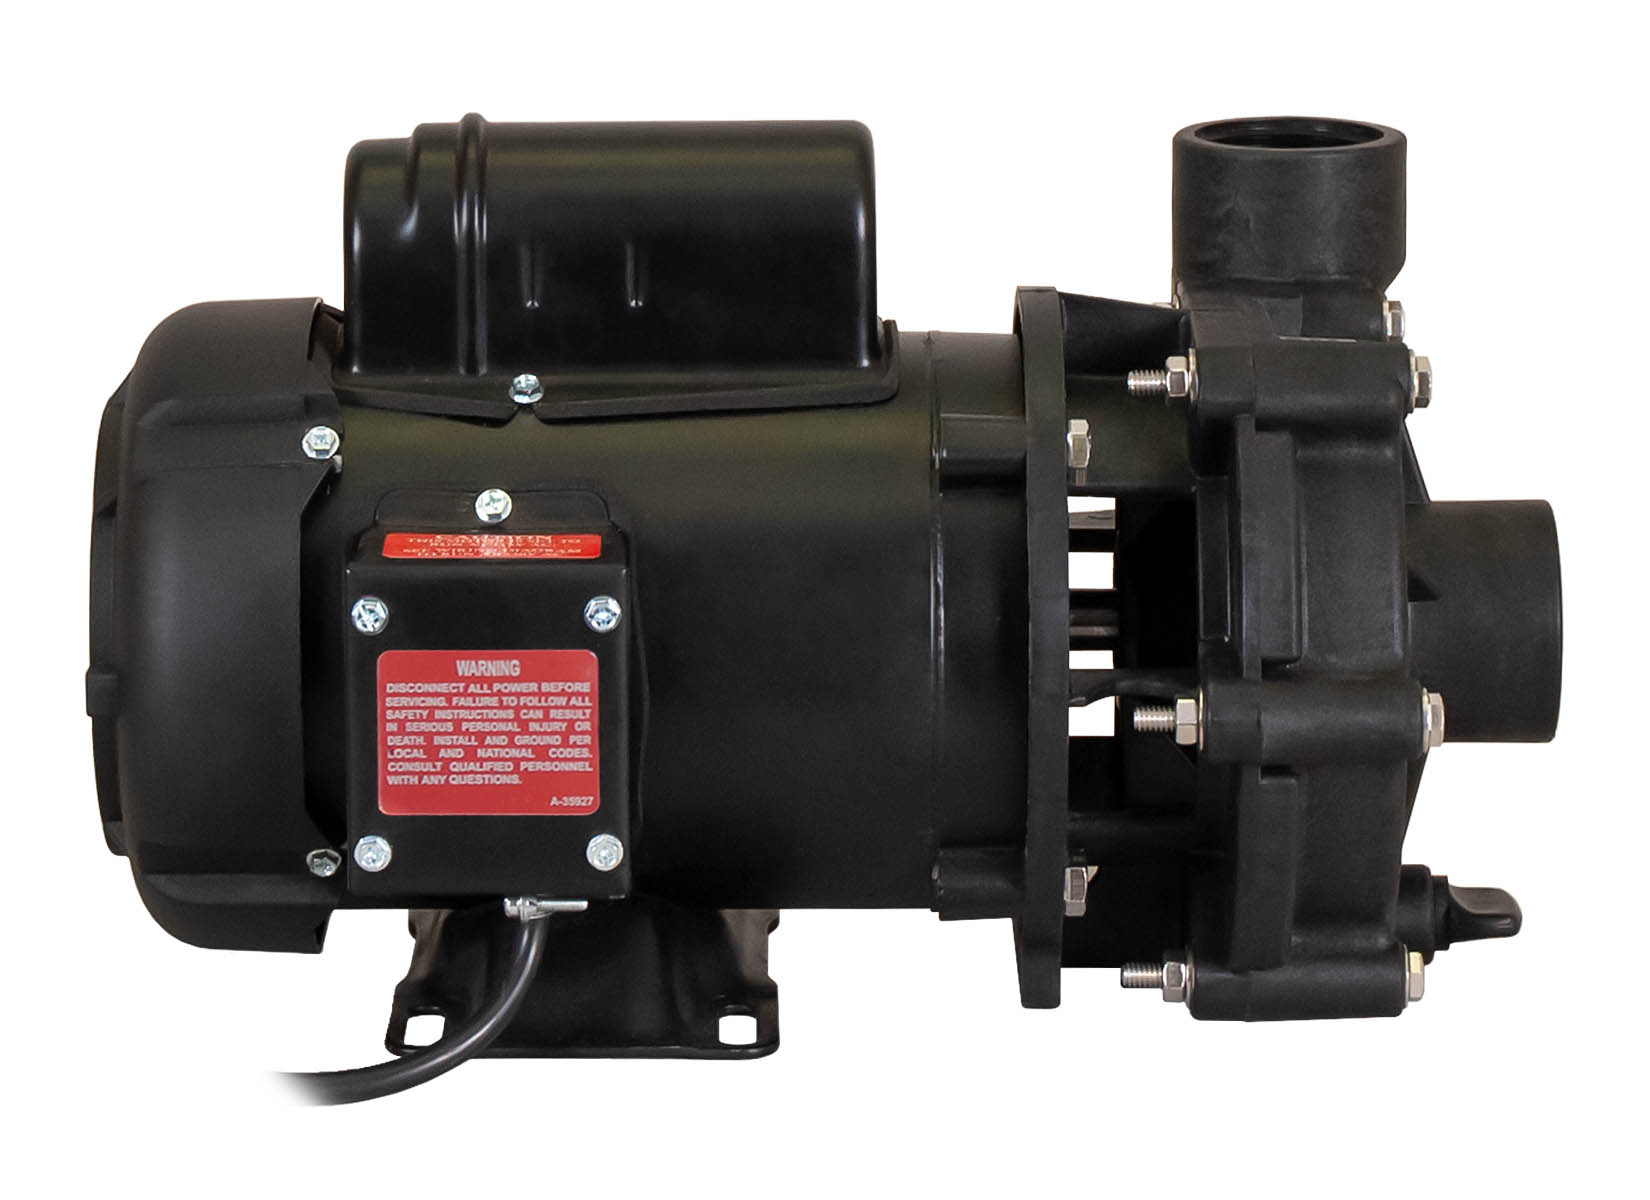 ValuFlo 1000 Pump with Leeson Motor left side view